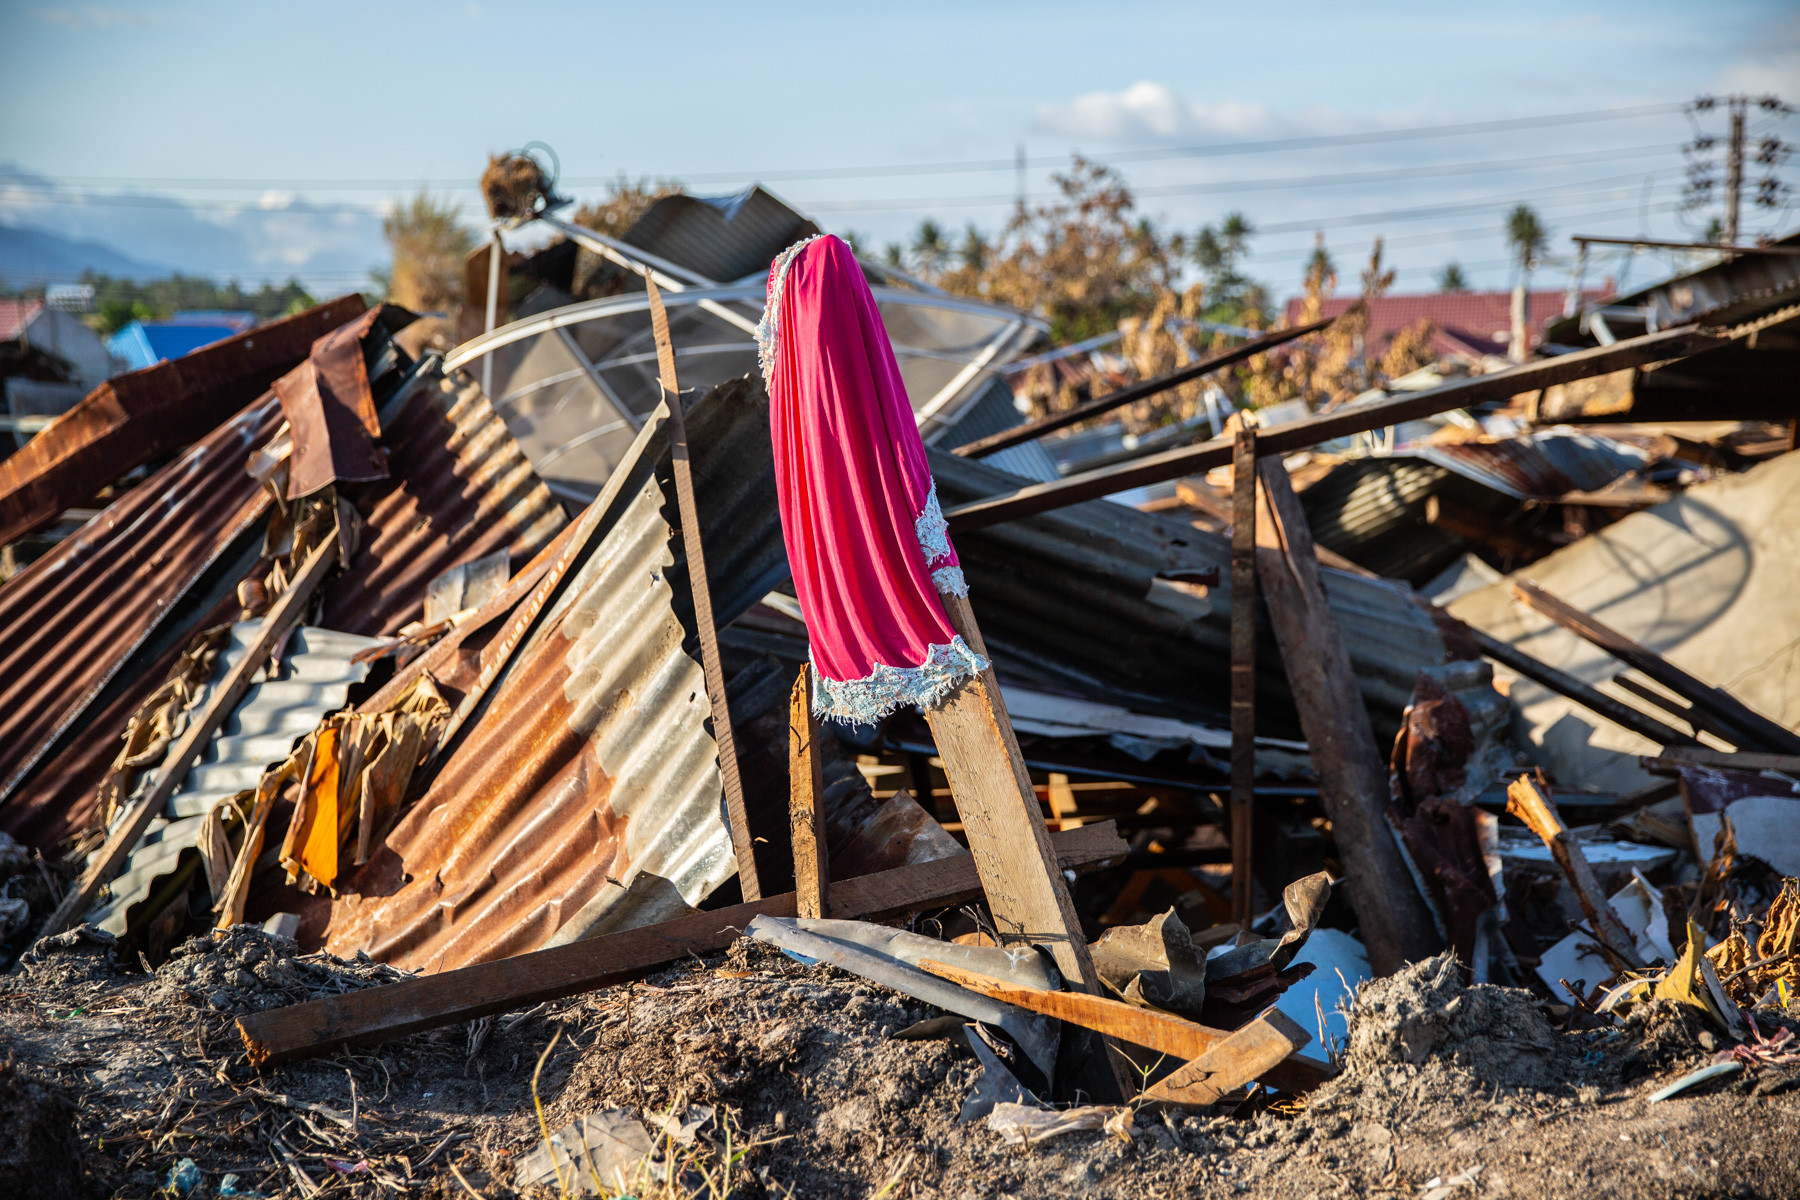 """A sign put on the ruins at Balaroa, Palu, Central Sulawesi. On Friday afternoon Sep. 28, 2018 Central Sulawesi hit by deadly earthquake that triggered tsunami and liquefaction that destroyed many places. Amid the ruins of Balaroa housing complex I met Huzaimah (38), one of the survivors of the disaster. Her eyes filled with tears as she told me how she could escape death. When the earthquake struck, a cupboard fell on her but luckily she was able to remove it, and then she immediately got out of the house. Sadly, her elder sister was lost amid the stumbling ground and had not been discovered when I met her. """"That's why we put a sign there (pointing to the flag placed on the ruins) in the hope to find my sister even though she might have been dead"""", she said. When I was walking around the area, I found some similar signs, signifying a hope that the search and rescue team would be able to find their relatives or loved ones. According to the national disaster mitigation agency death toll had risen to 2,113 with 1,309 still missing and the official search was stopped on last Friday, Oct 12, 2018."""